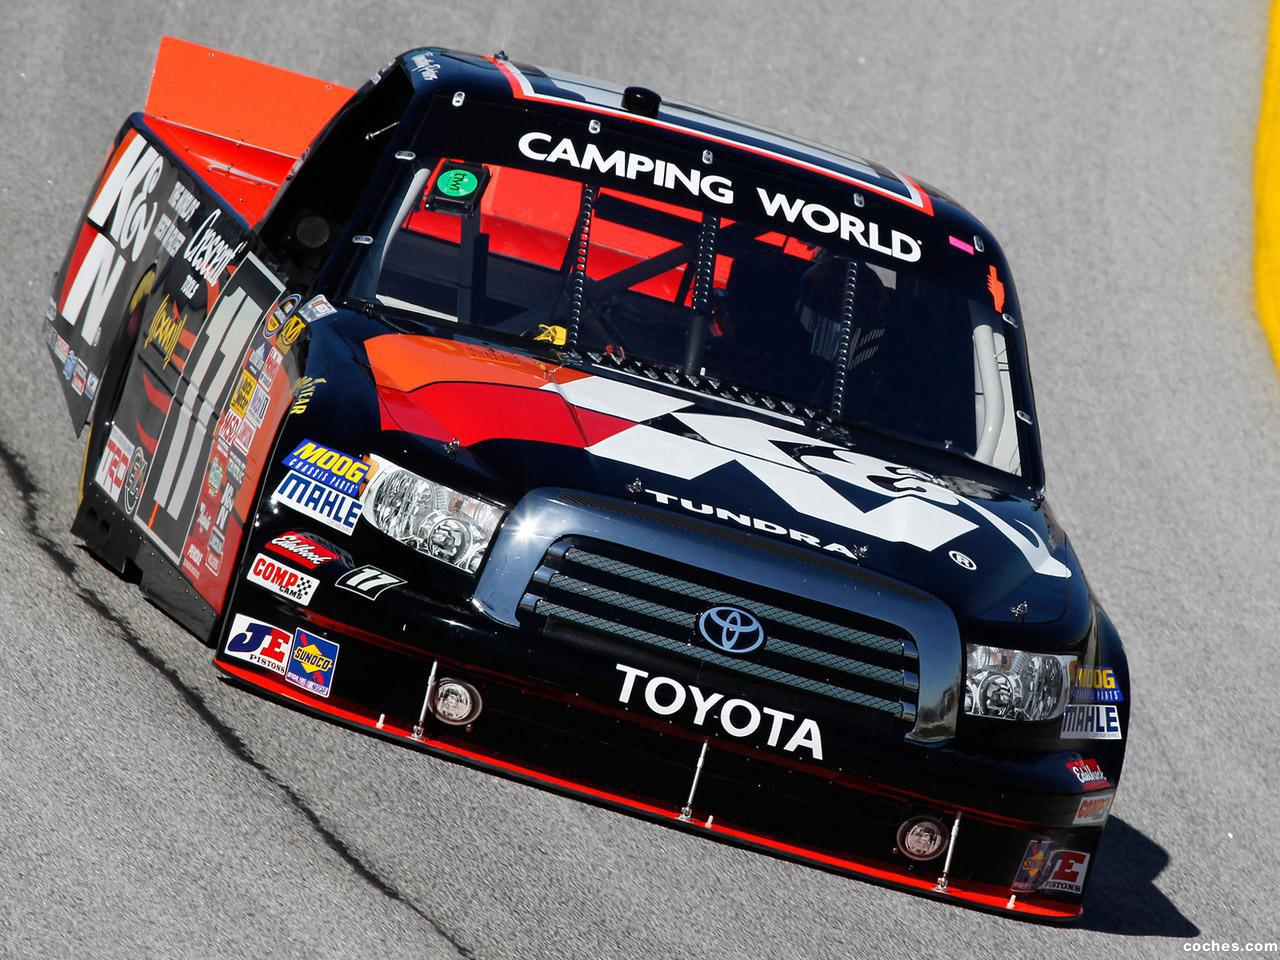 Foto 9 de Toyota Tundra Nascar Camping World Series Truck 2009